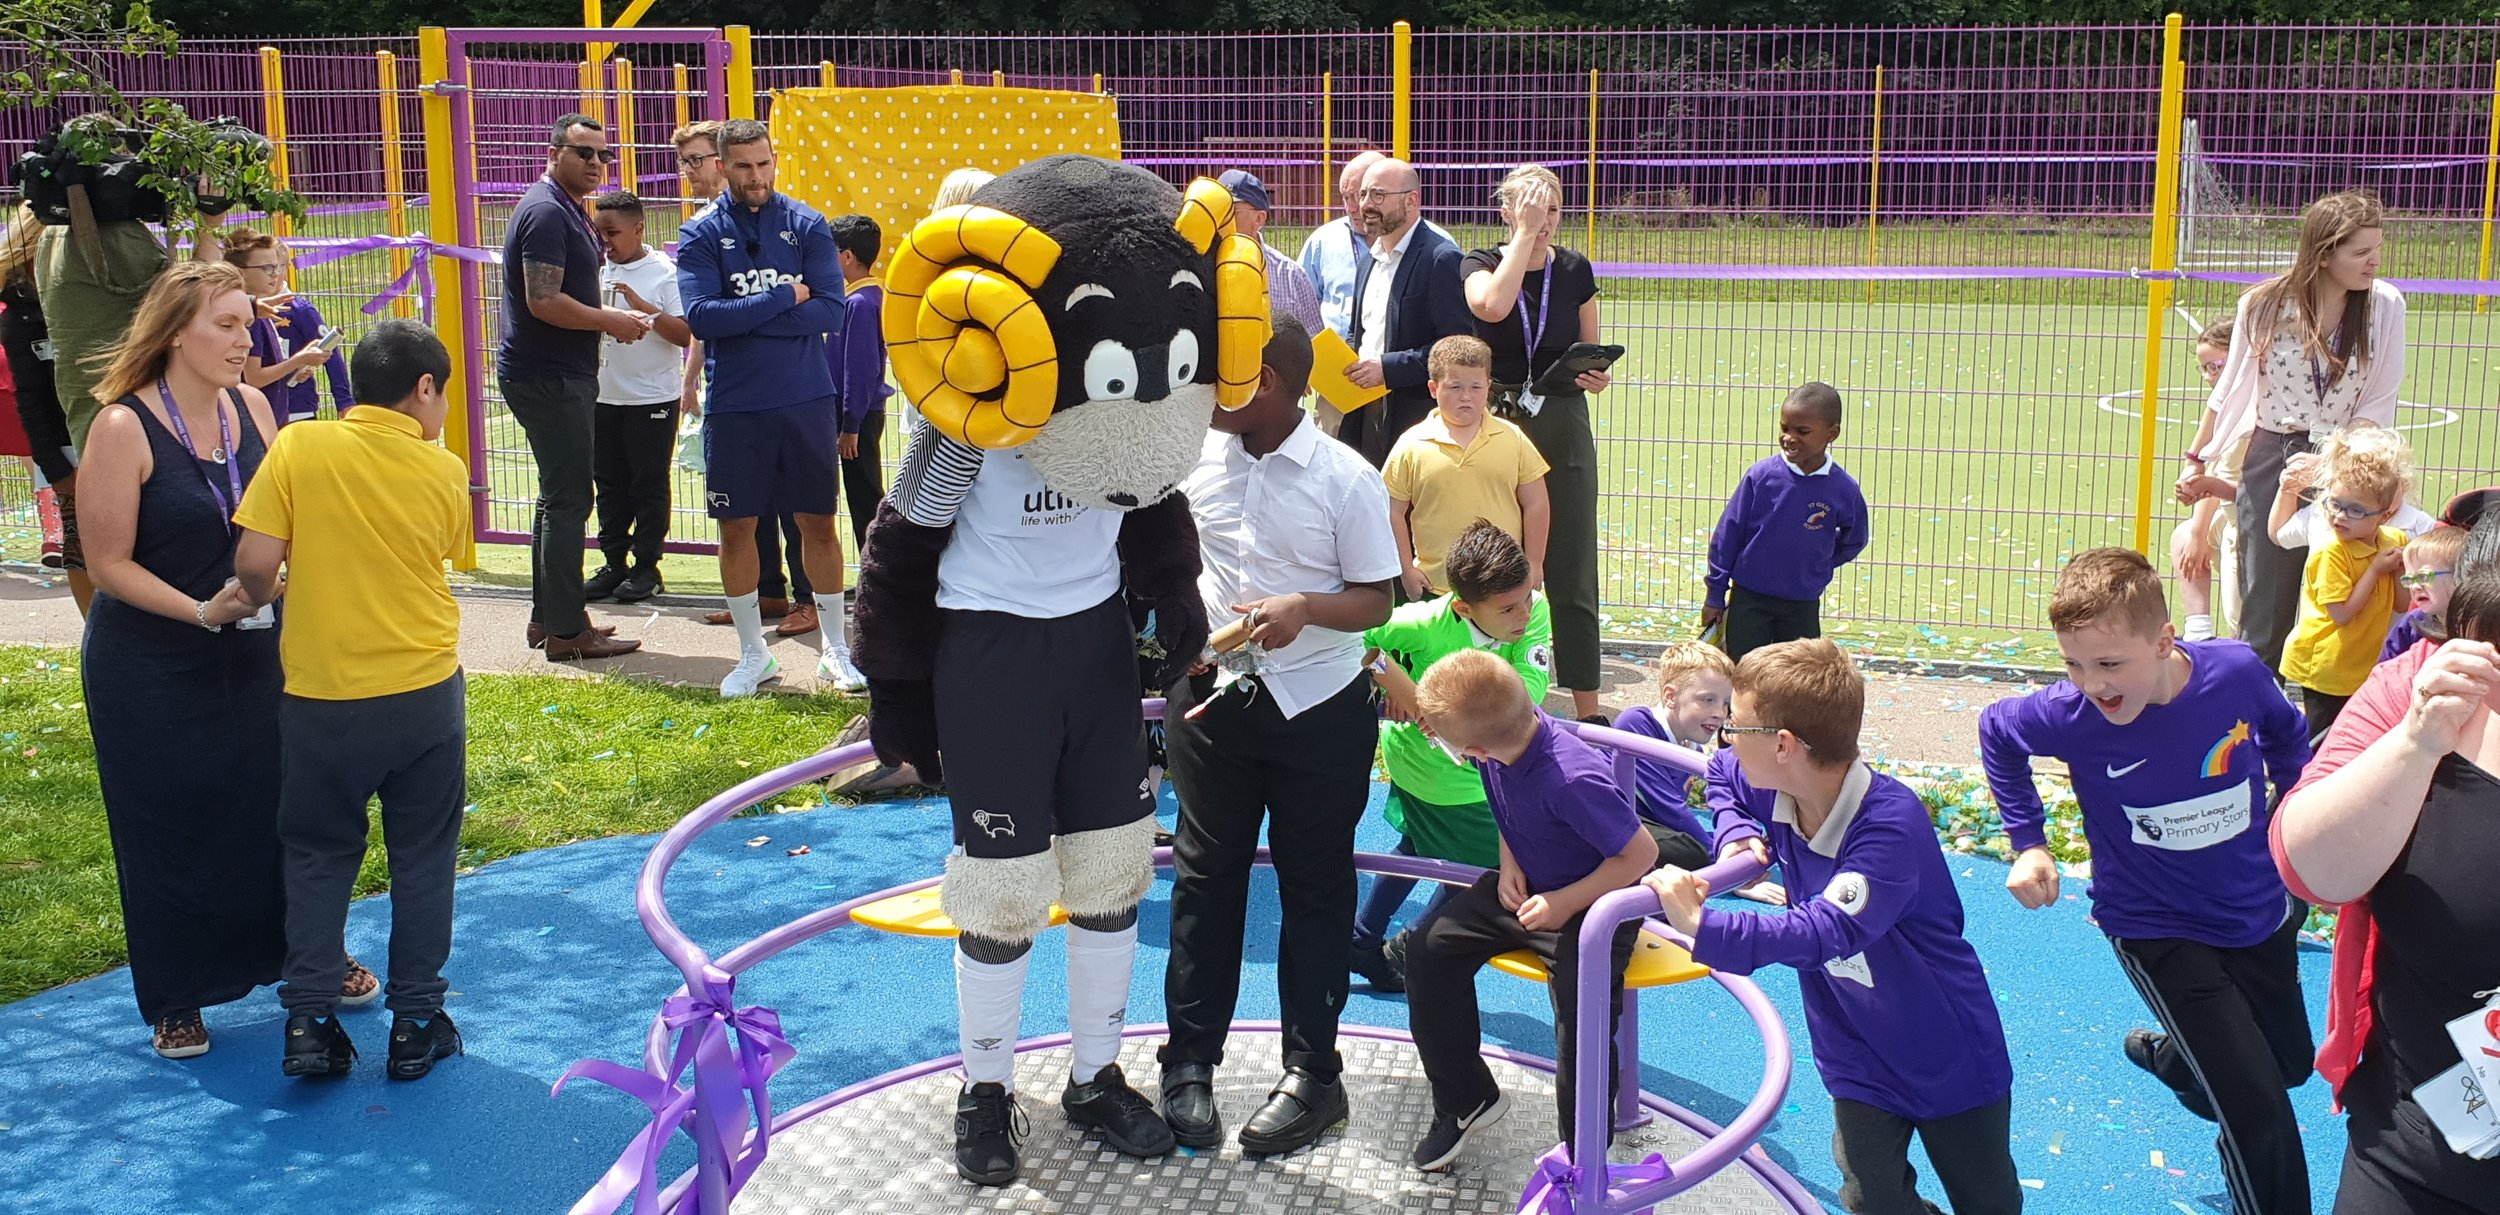 Derby County midfielder Bradley Johnson has opened the new MUGA at St Giles School in Derby. Penguin PR: public relations, media and communications